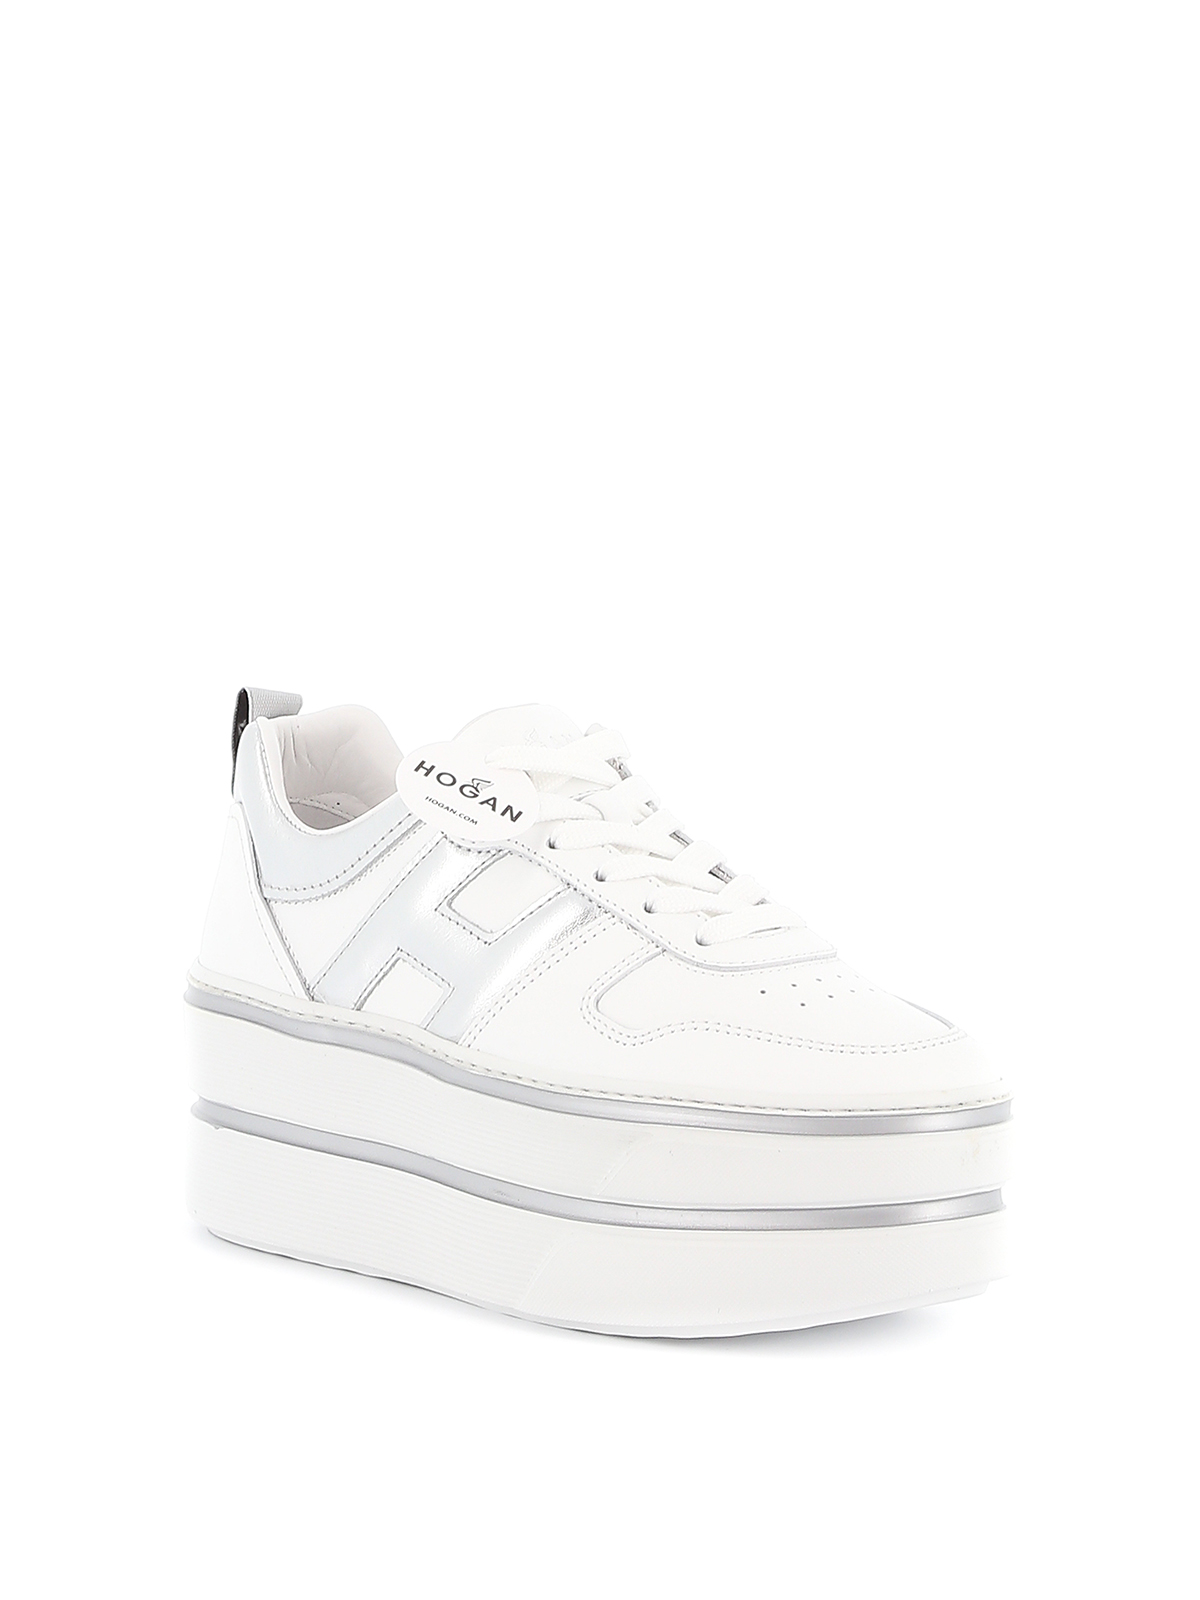 Trainers Hogan - H449 white and silver leather sneakers ...